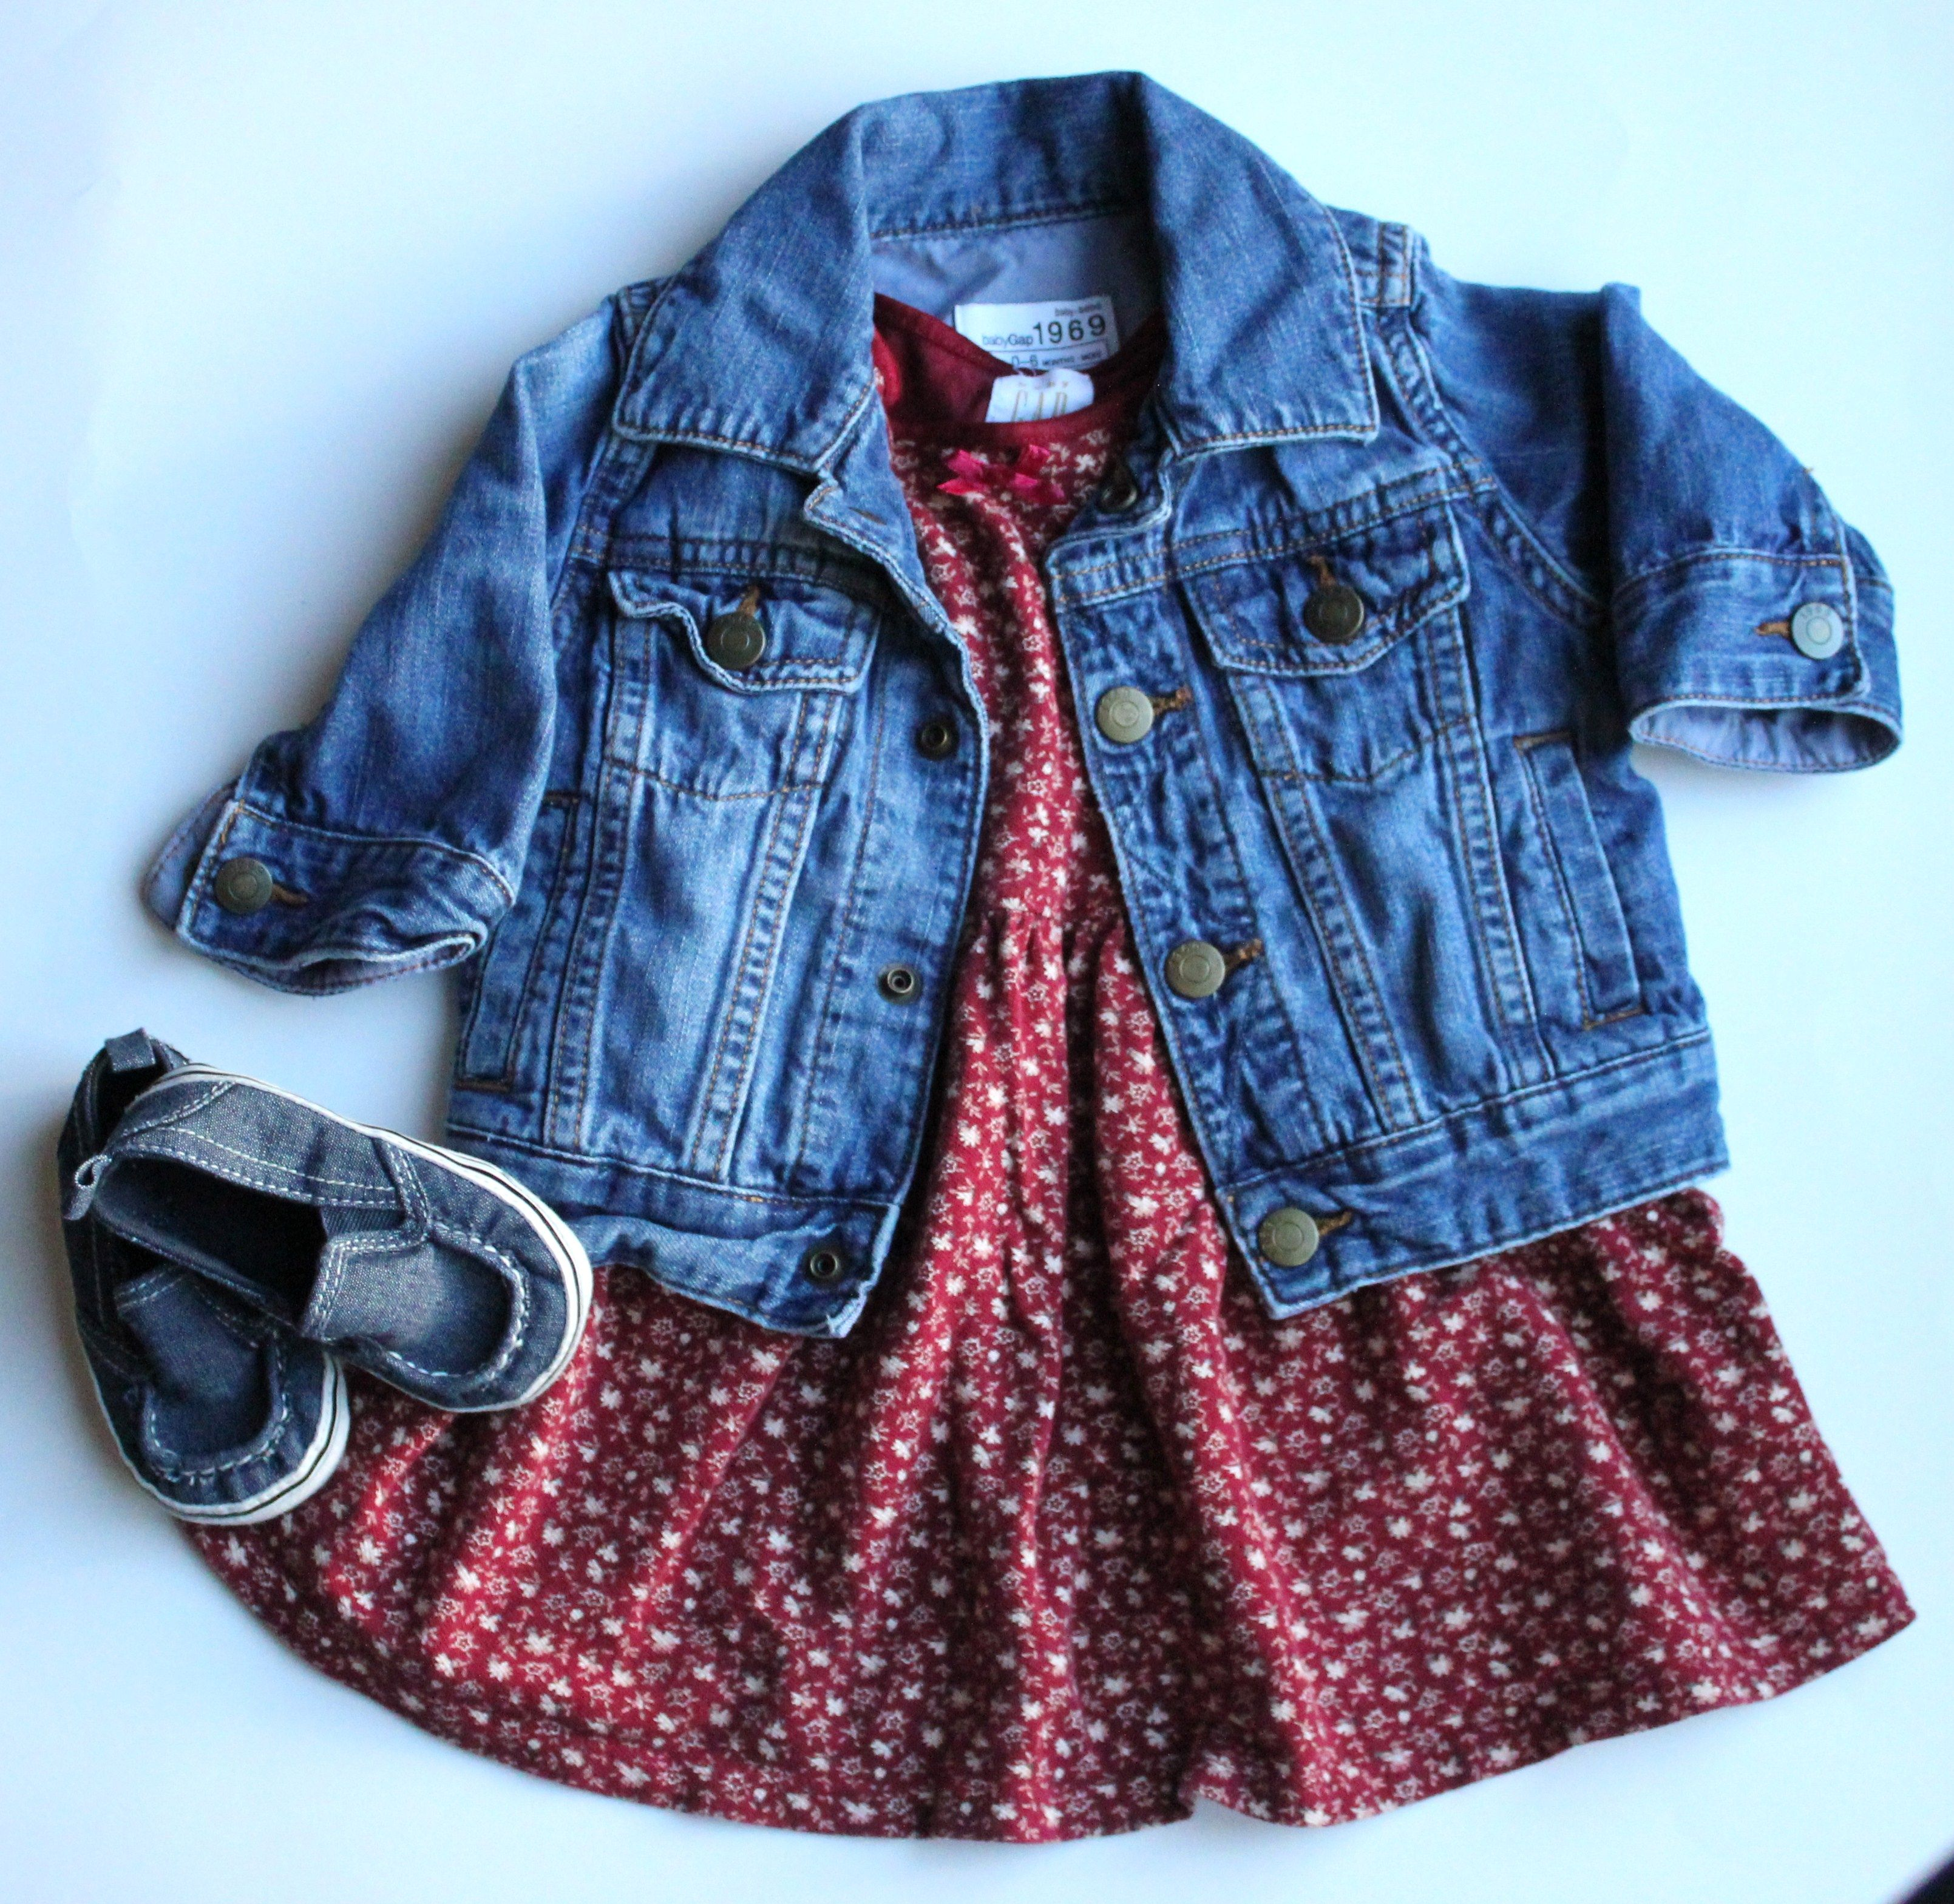 Baby Girl Outfit Denim Jacket Dress And Shoes All Baby Gap Cute